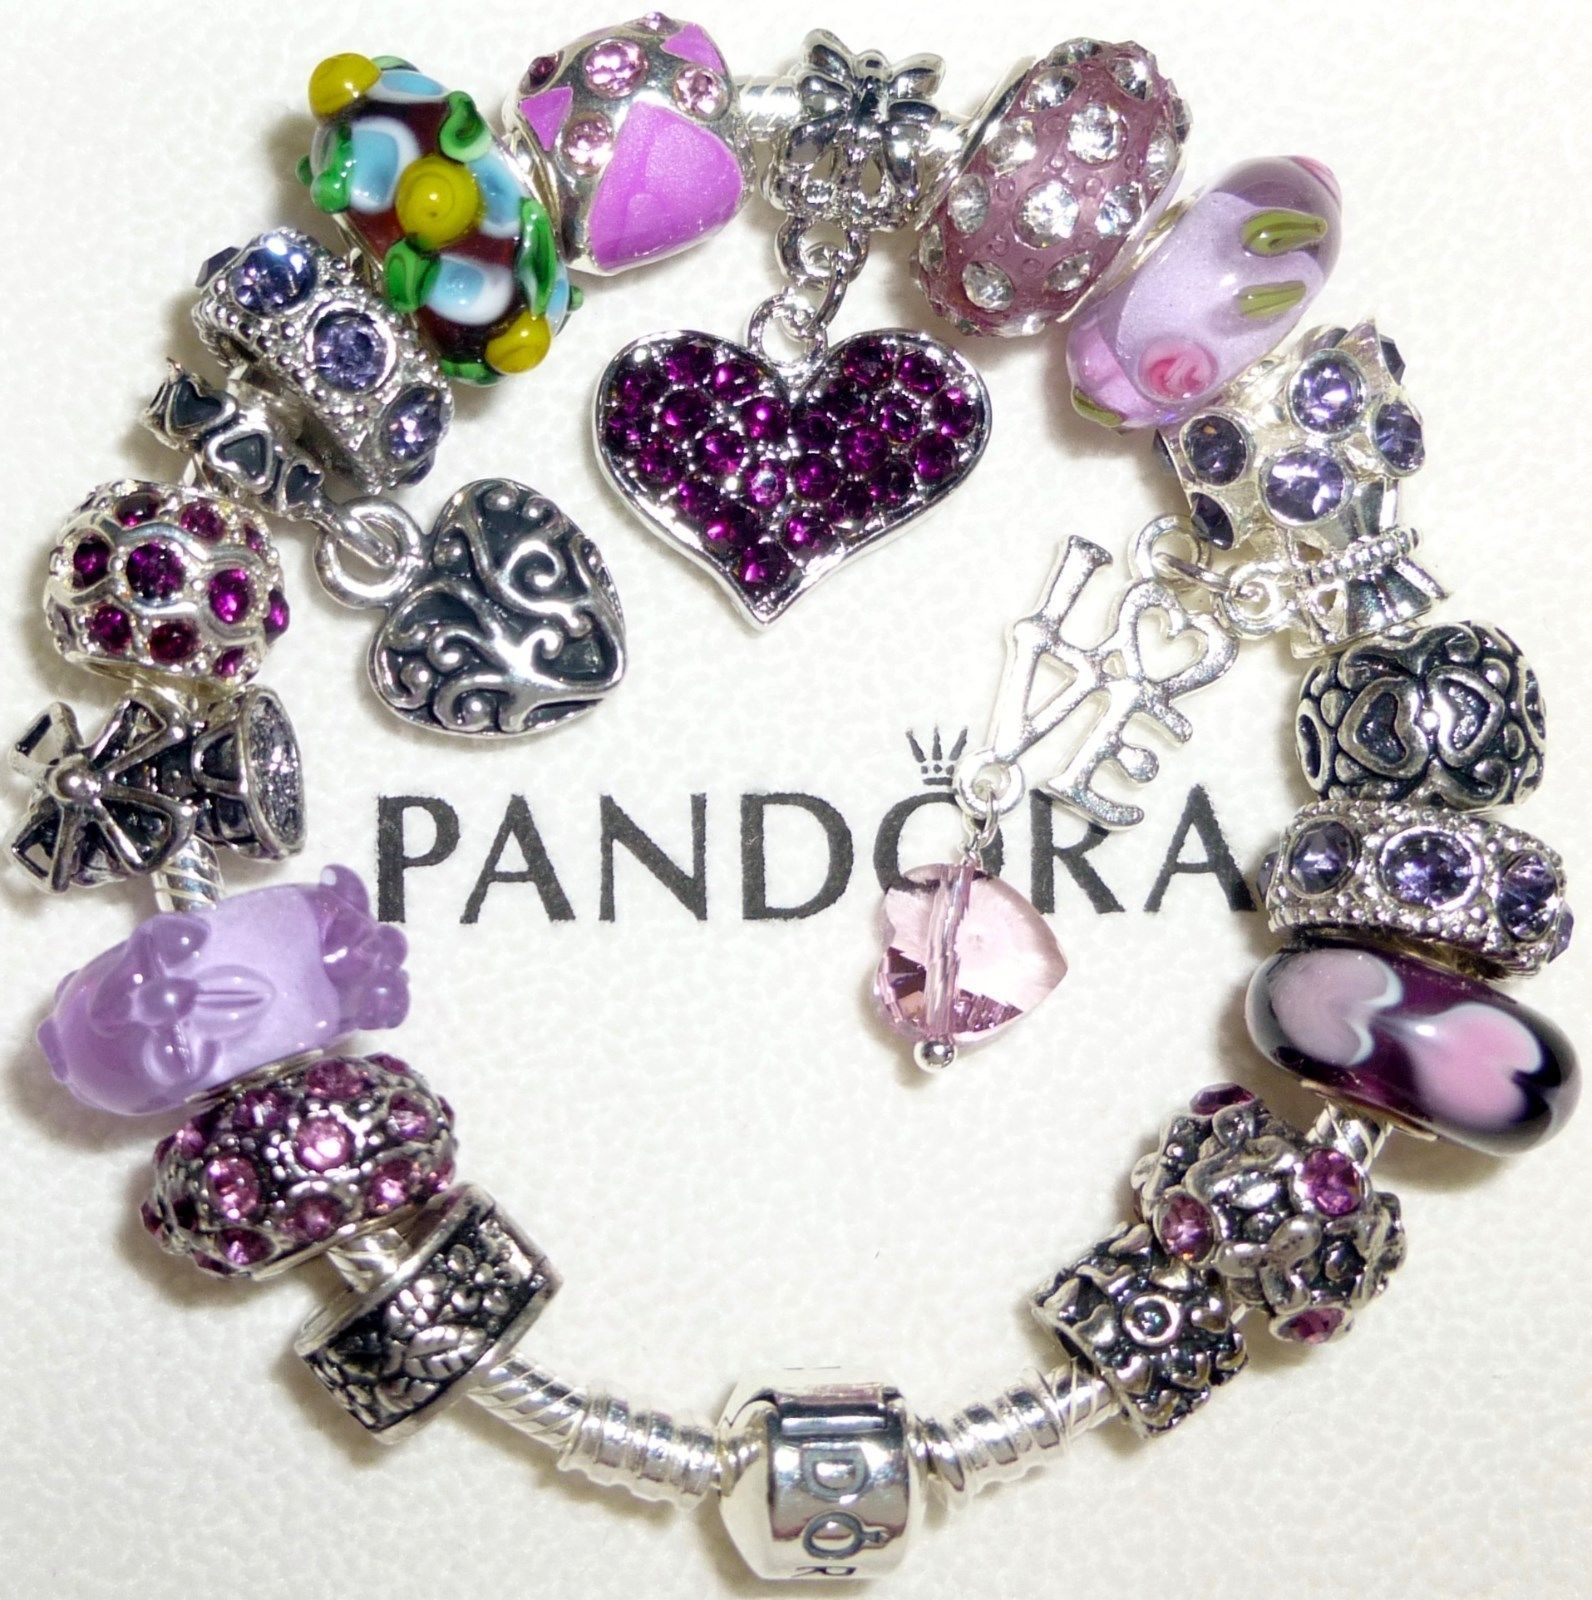 How To Clean Pandora Bracelet And Charms: Authentic Pandora Bracelet Barrel Clip With Charms Happy